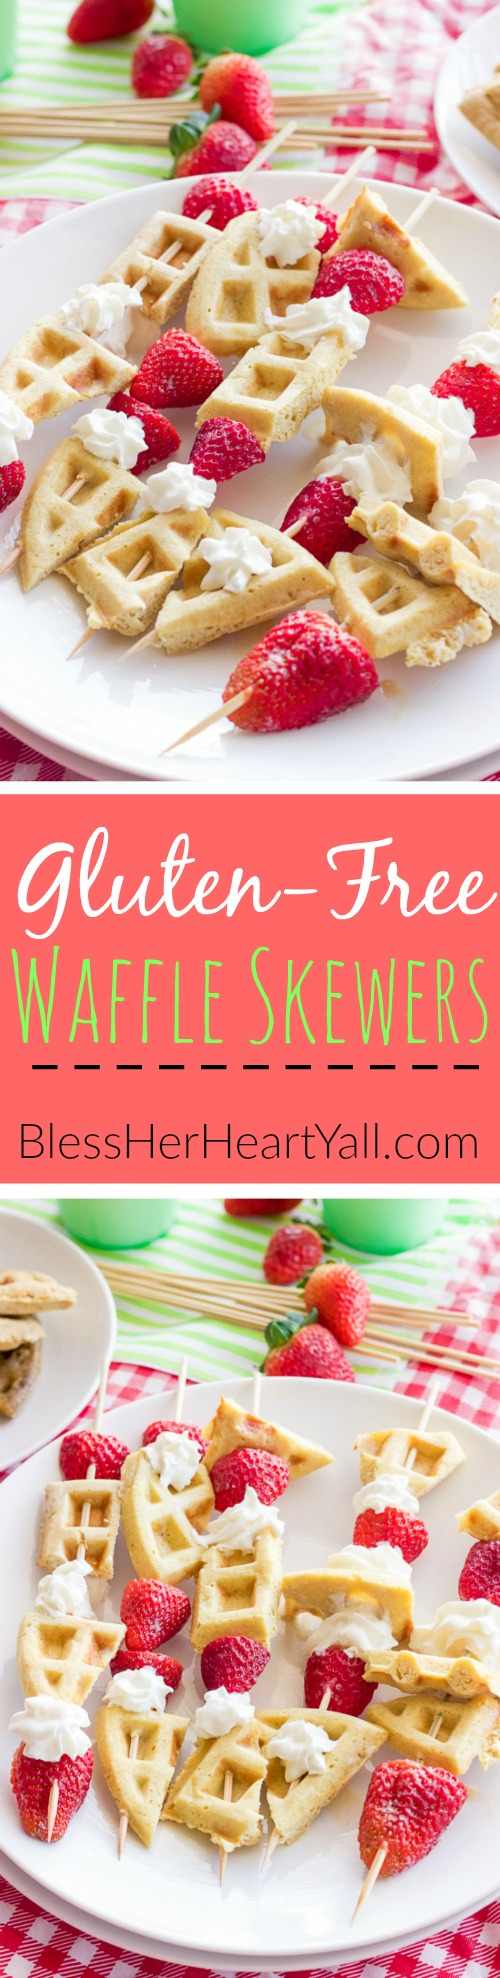 These gluten-free waffle skewers make breakfast fun and tasty. The sweet brown sugar waffles go great with fresh berries and creamy whipped cream. And the best part? Breakfast is on a stick!